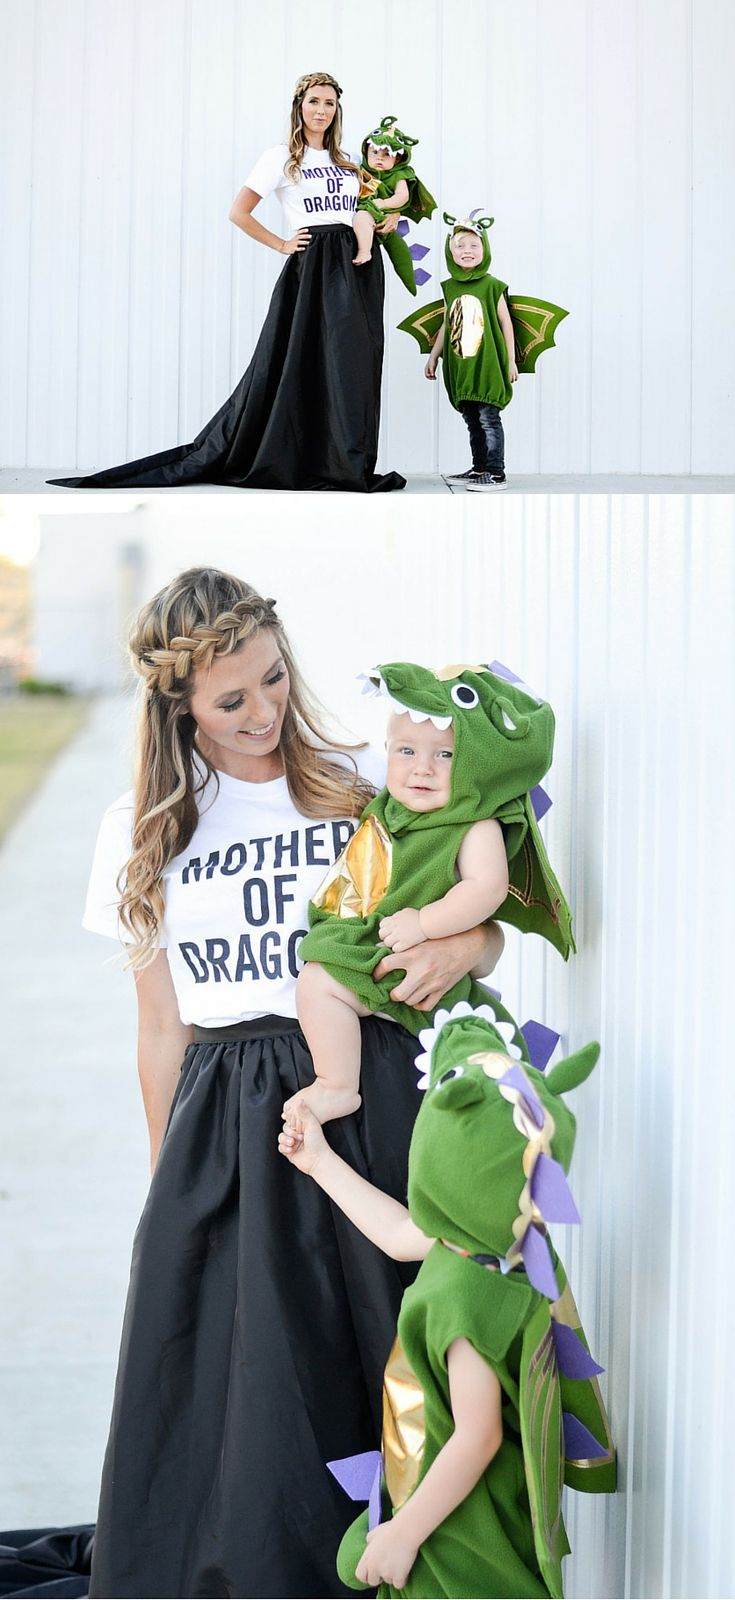 Creative-Mom-and-Kid-Halloween-Costumes-Mother-of-Dragons-and-Baby-Dragons.jpg (735×1600)